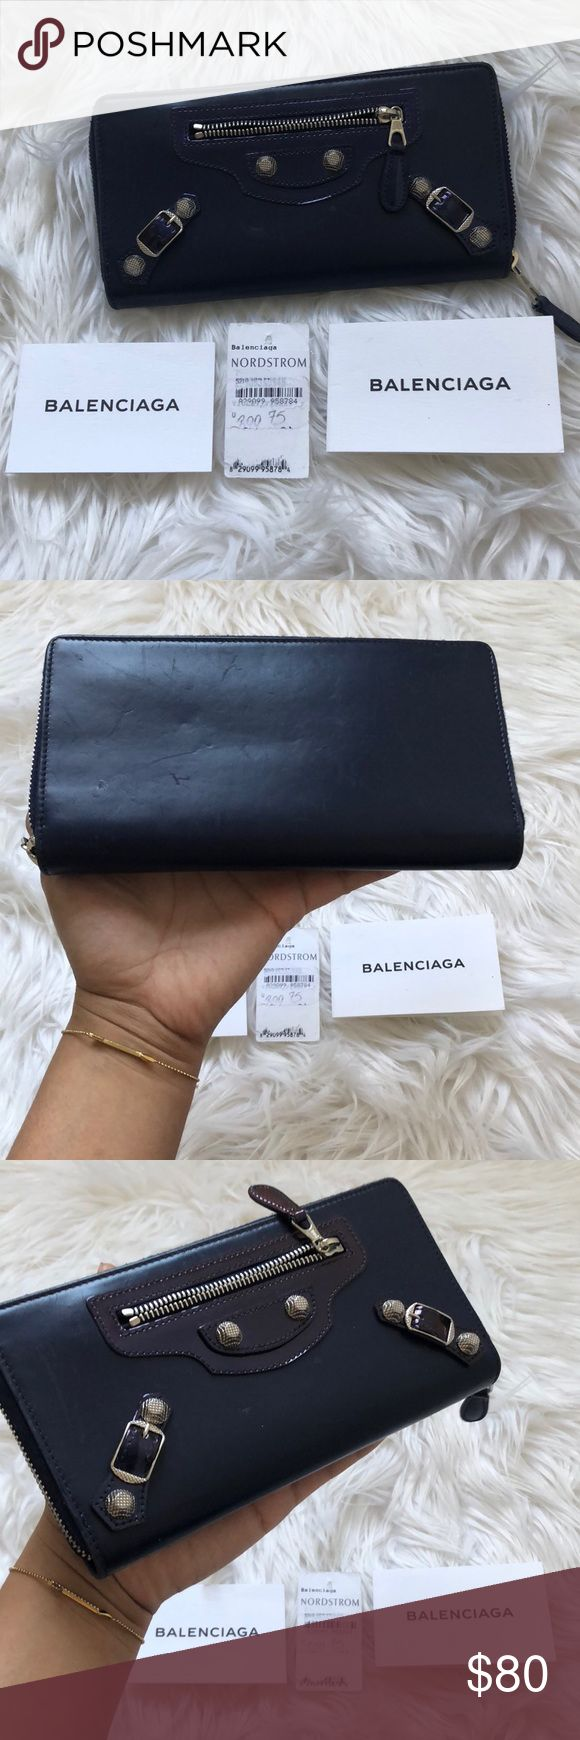 Balenciaga wallet used condition. price reflects. authentic. selling as is, zipper works, no rips or tears, but the smooth leather has marks from use. price negotiable! make an offer 💜💜💜 color is PURPLE💜💜💜 i uploaded new pictures of wallet; please see the listing! Balenciaga Bags Wallets